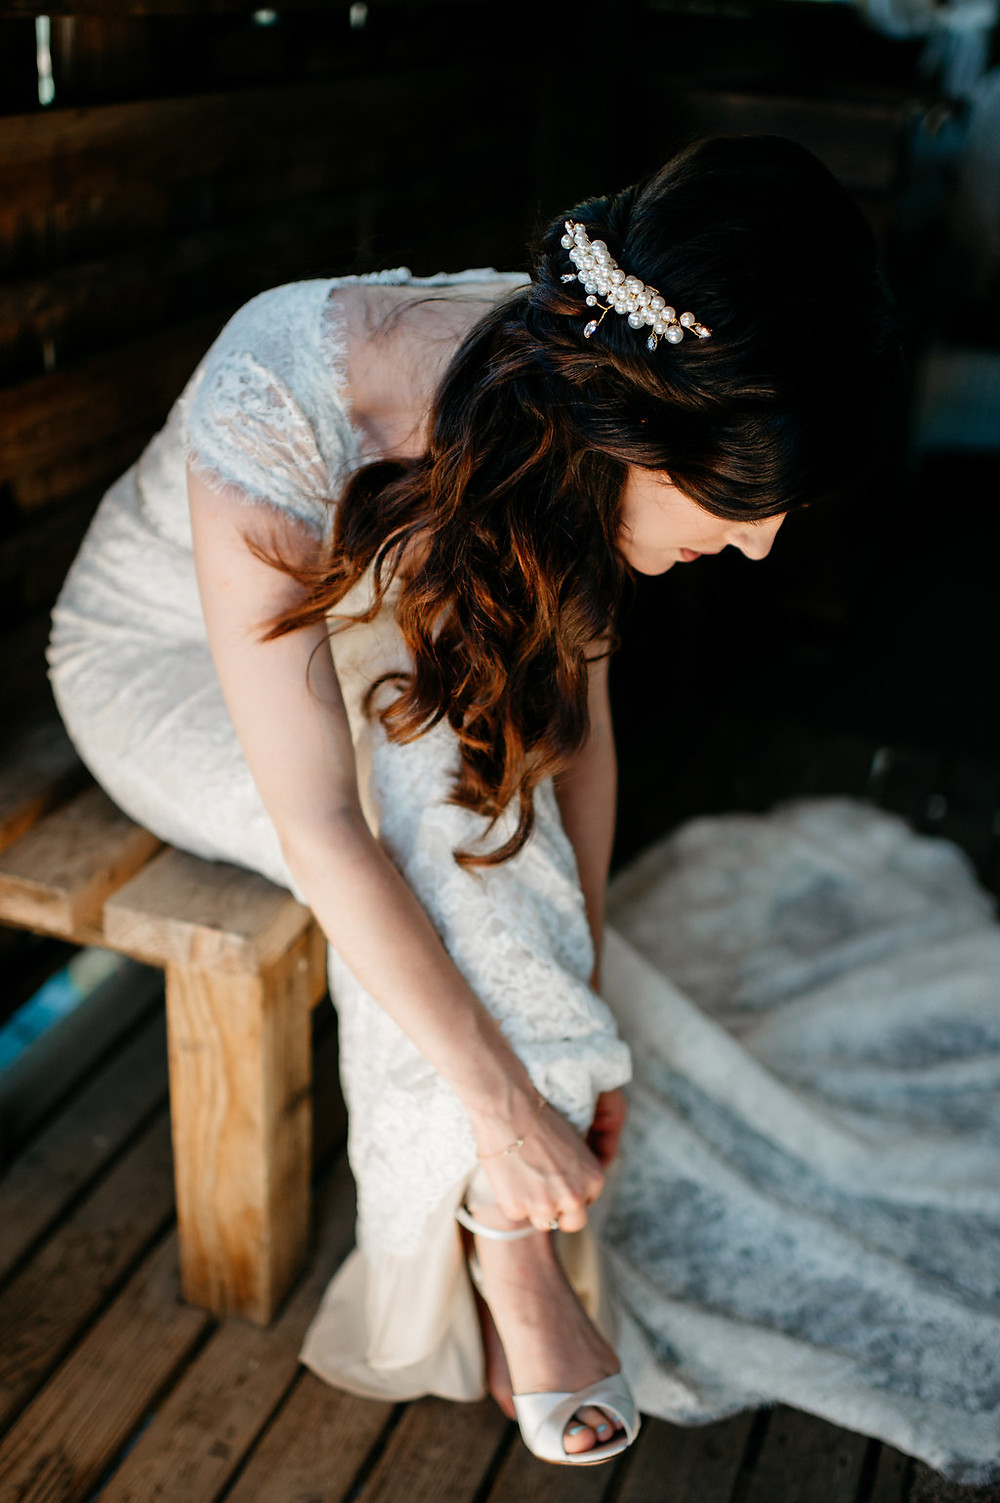 Meaningful Wedding Details | Bridal Hair Piece | Snohomish, WA Wedding Coordinator